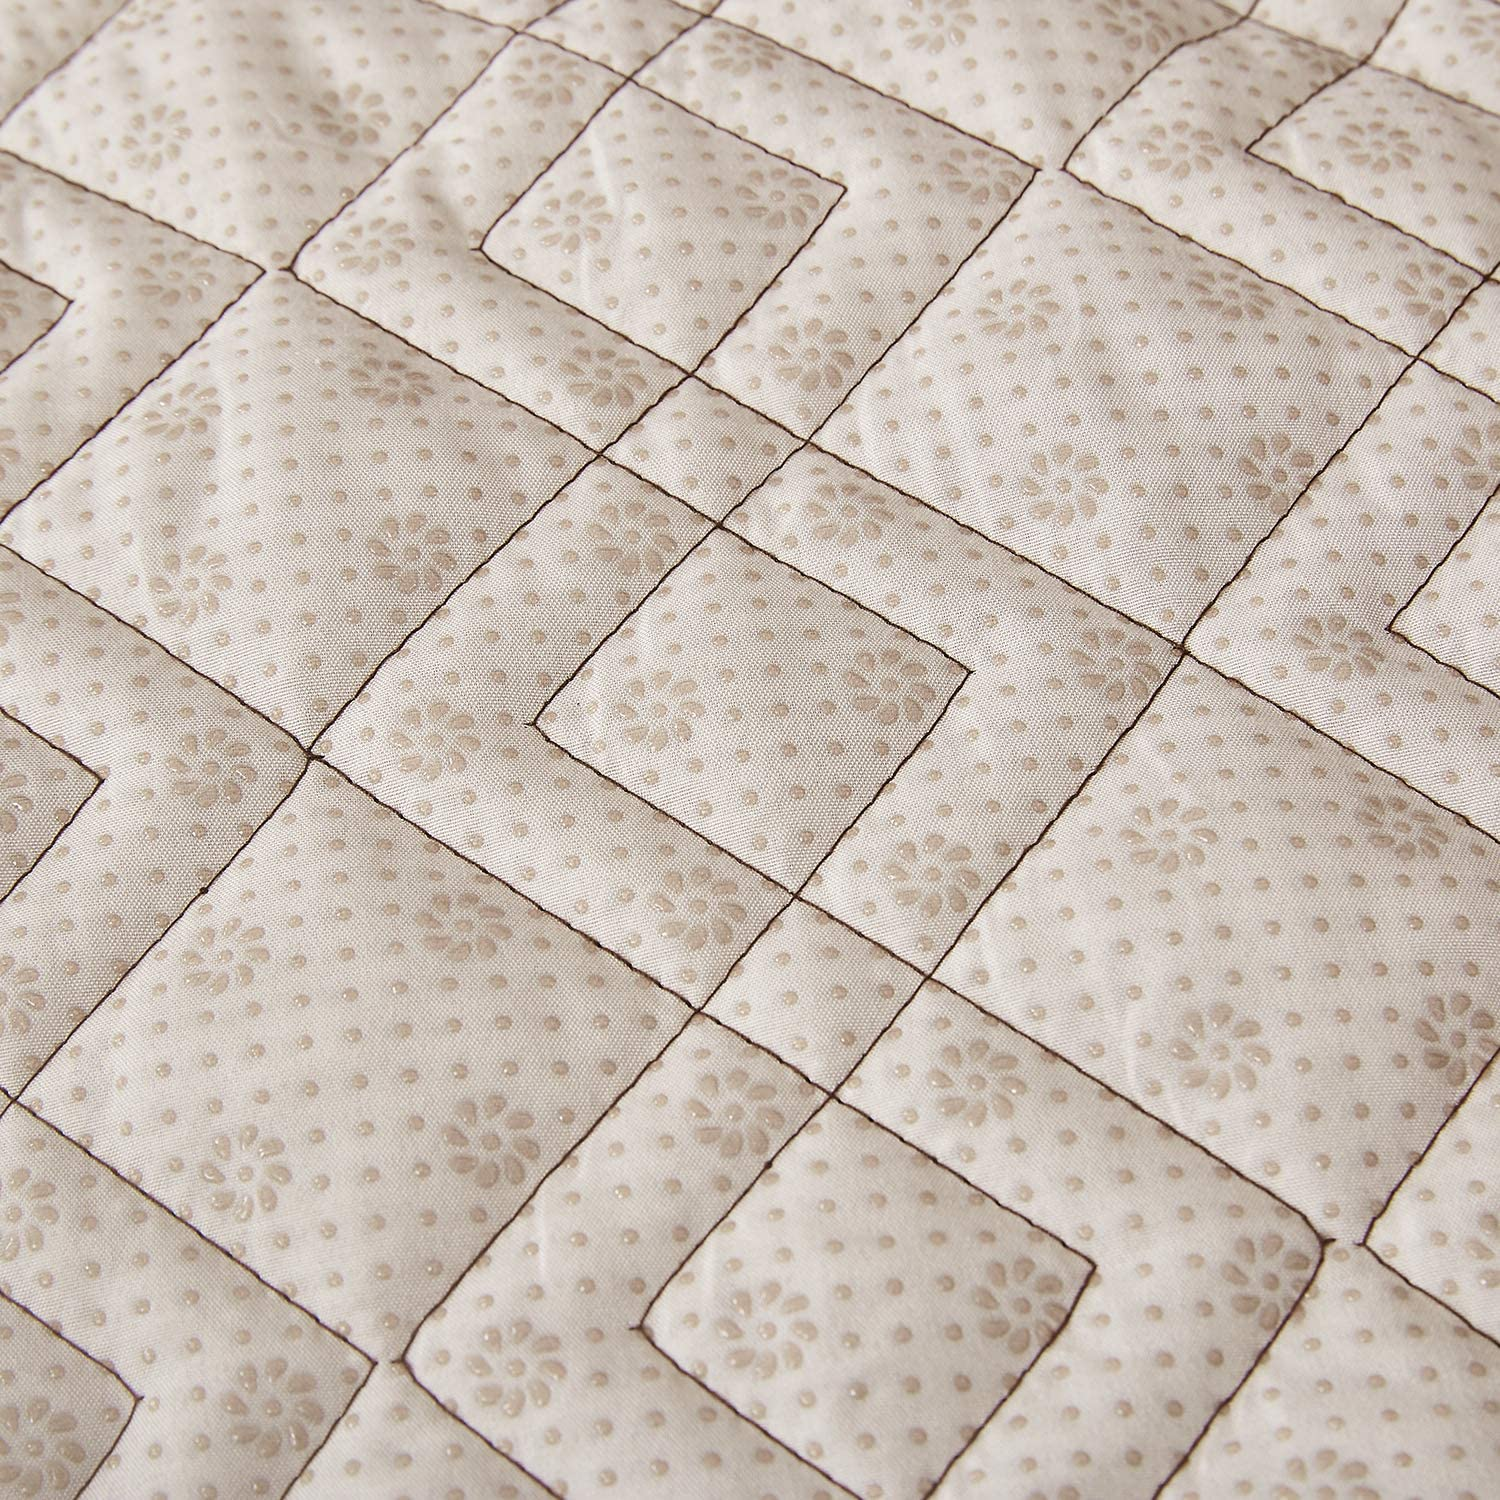 Recliner-Oversized:Chocolate Rose Home Fashion RHF Anti-Slip Oversized Recliner Cover for Leather Sofa /& Oversized Recliner Covers Recliner Chair Covers Slipcovers for Recliner Recliner Covers